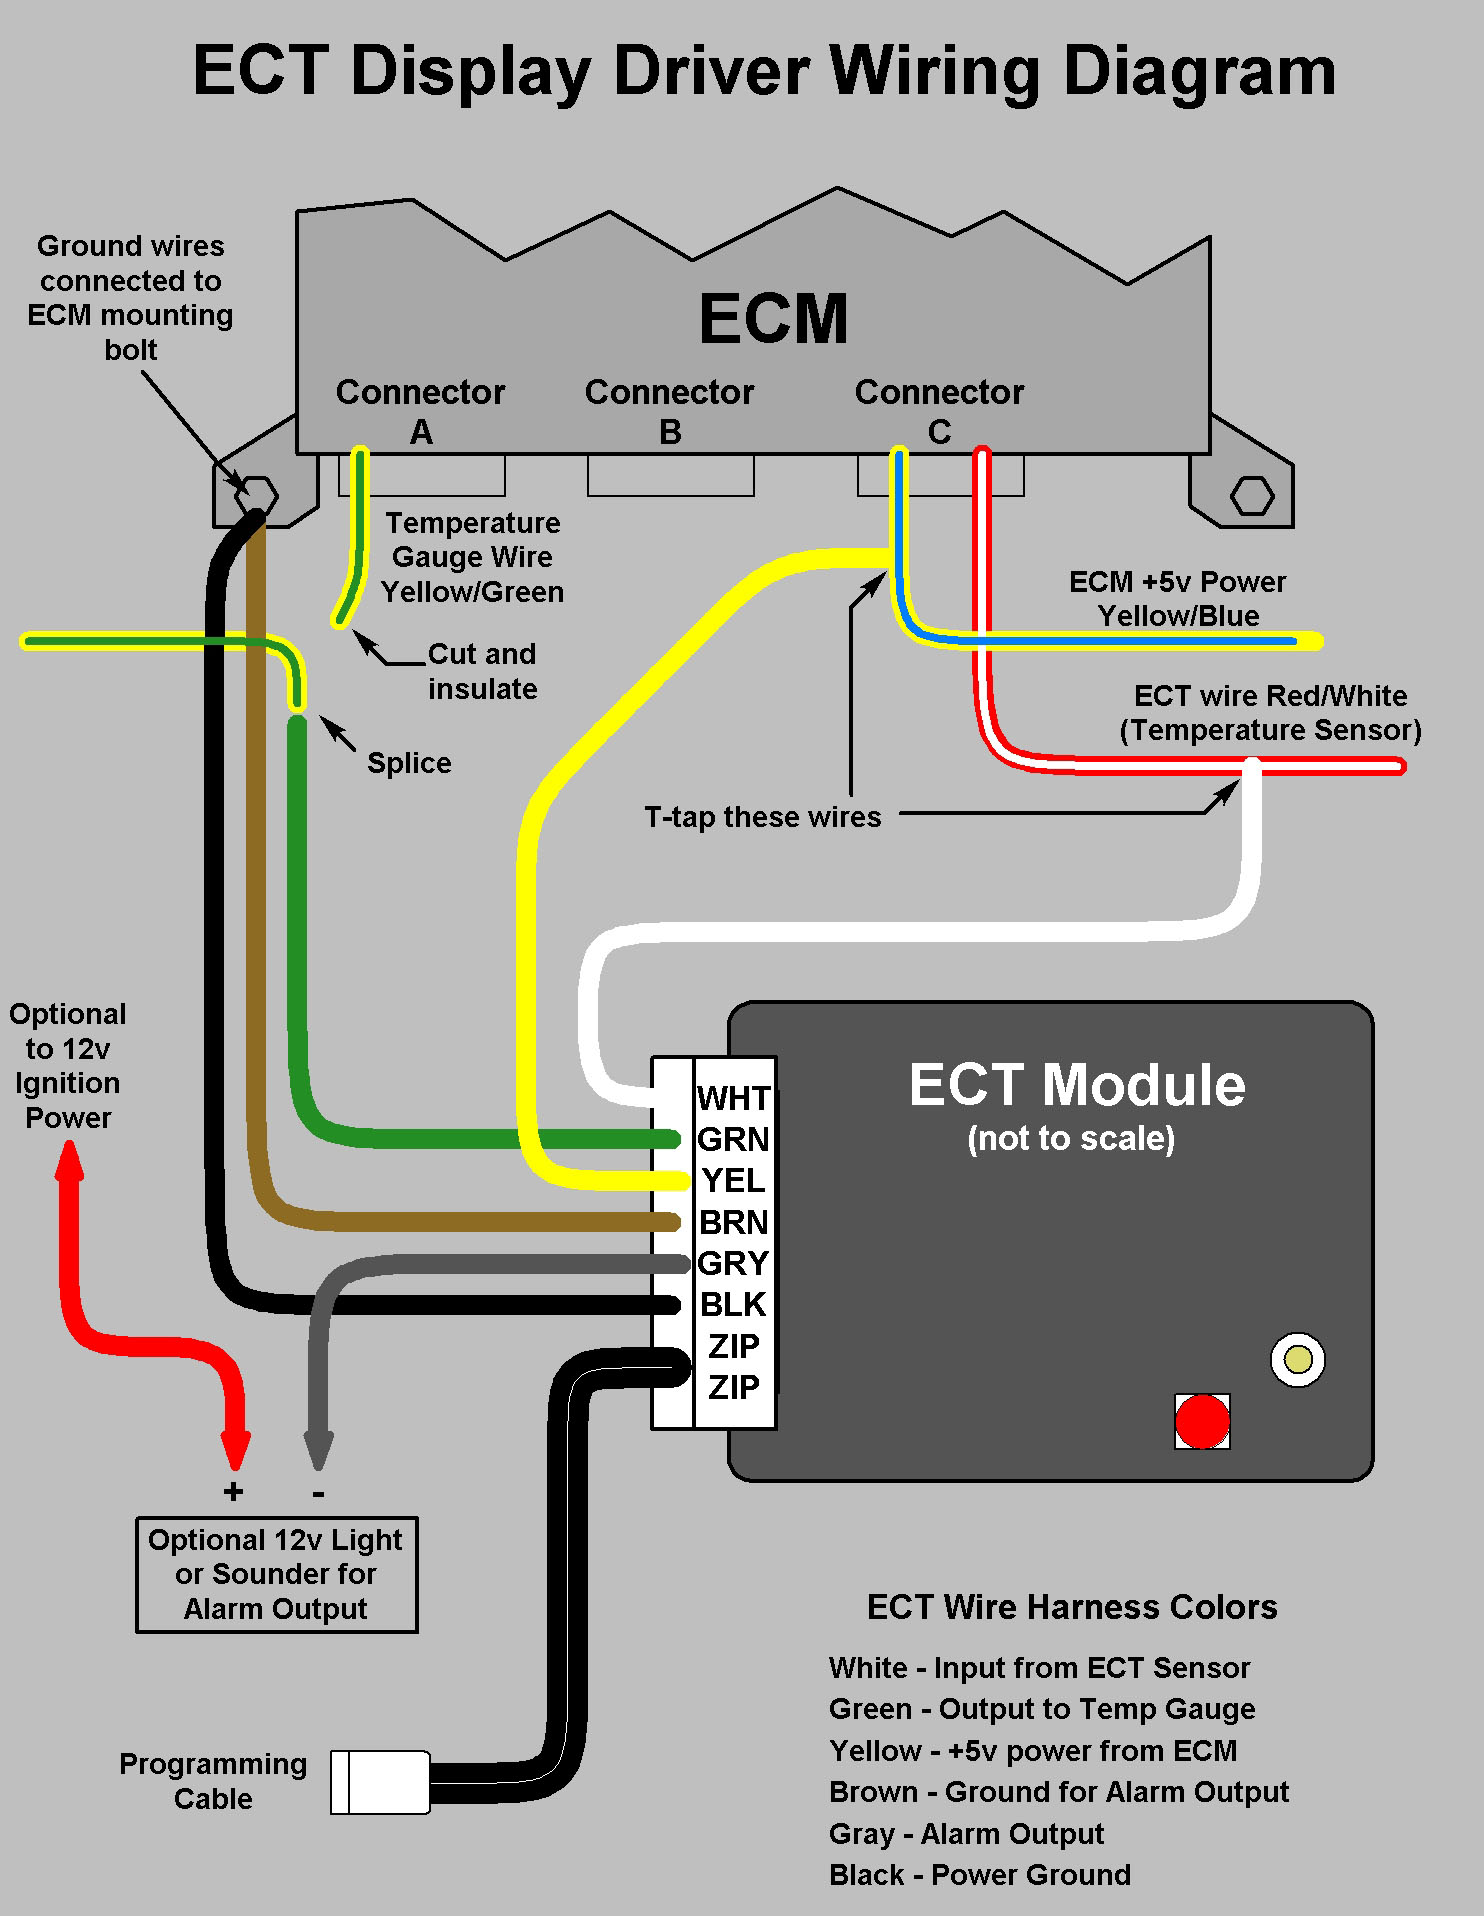 ECT wiring diagram ems wiring diagram management system \u2022 wiring diagrams j squared co 92 Camaro Fuse Box Diagram at bakdesigns.co